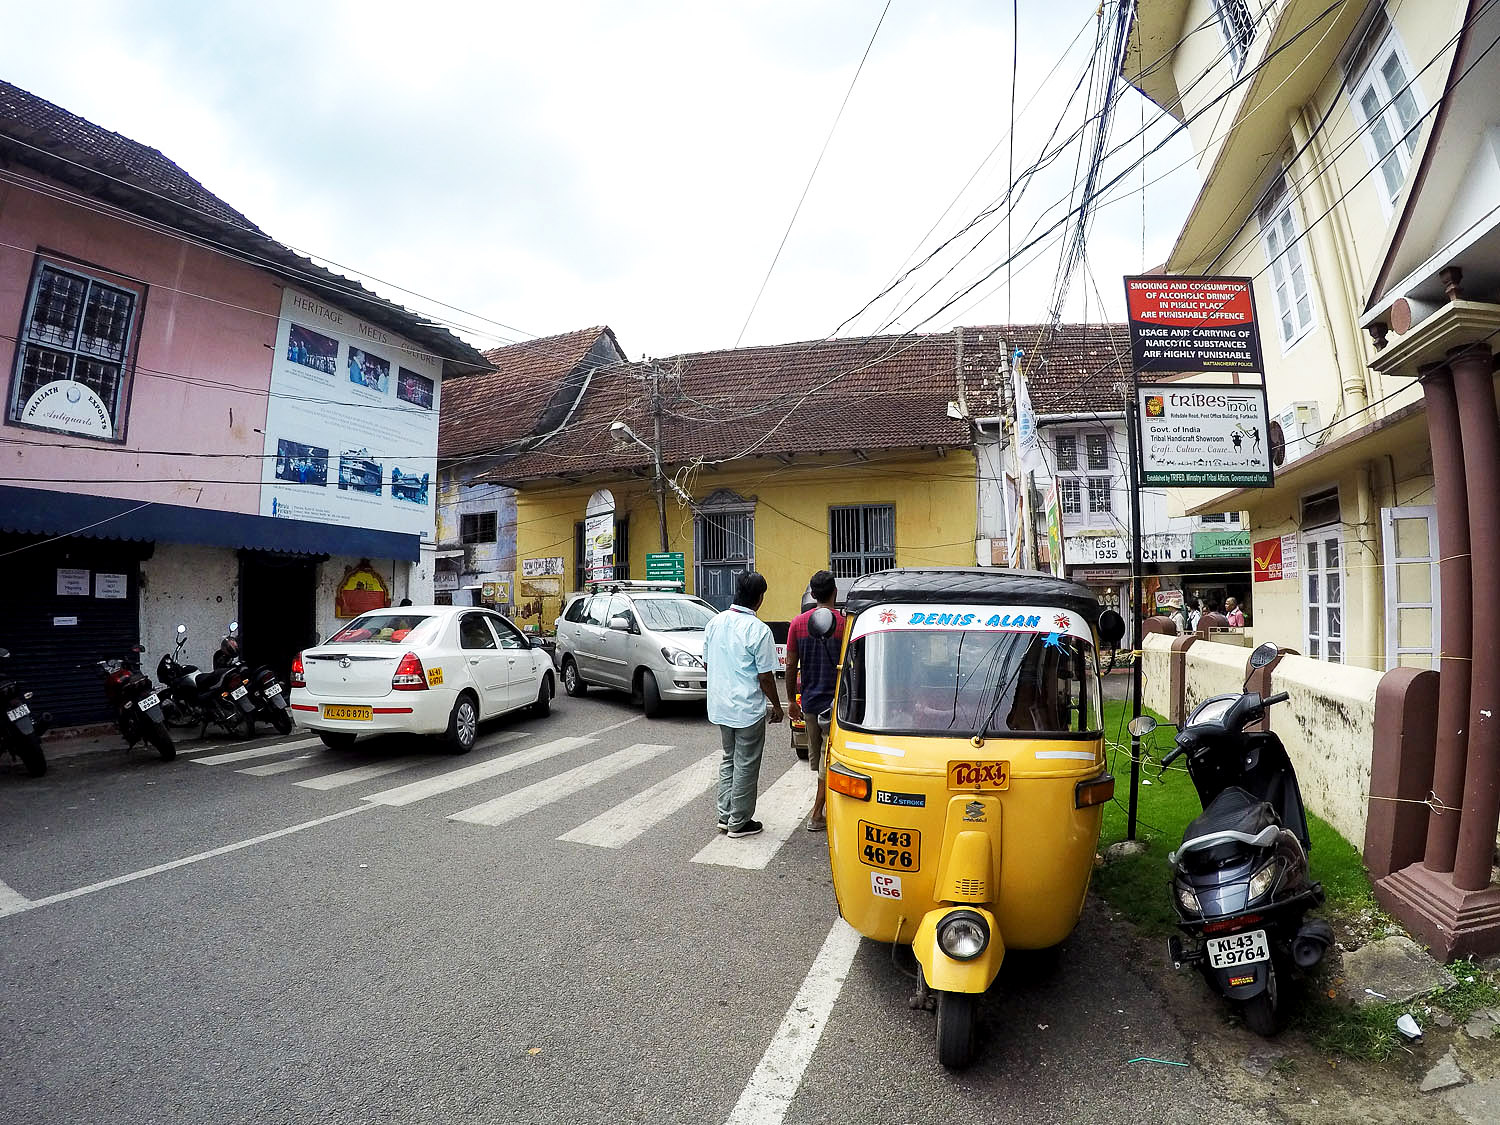 Mattancherry, Fort Kochi (Kerala, India)